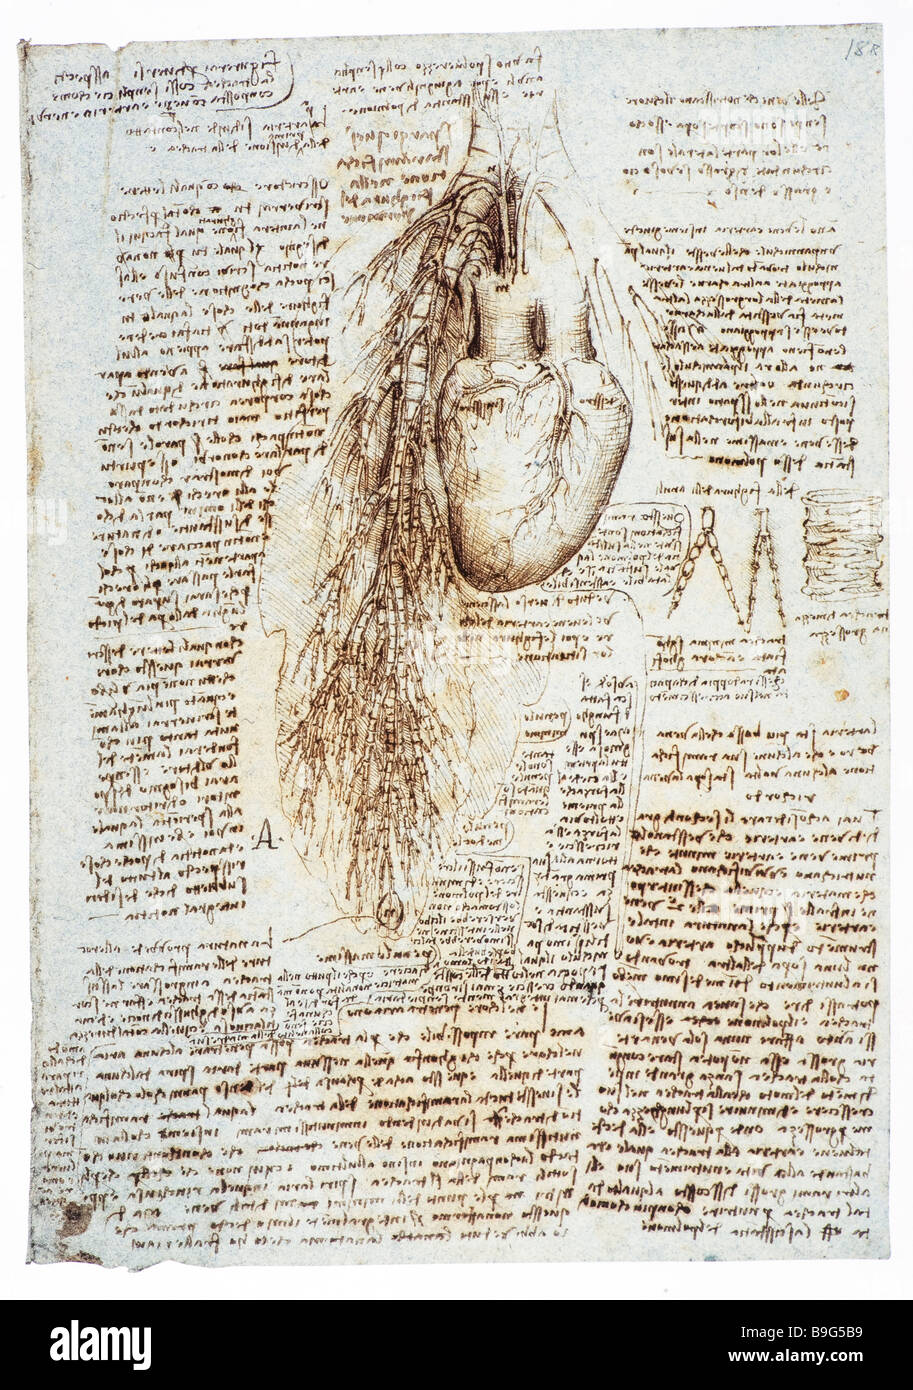 anatomical drawing of lungs and heart by leonardo da vinci